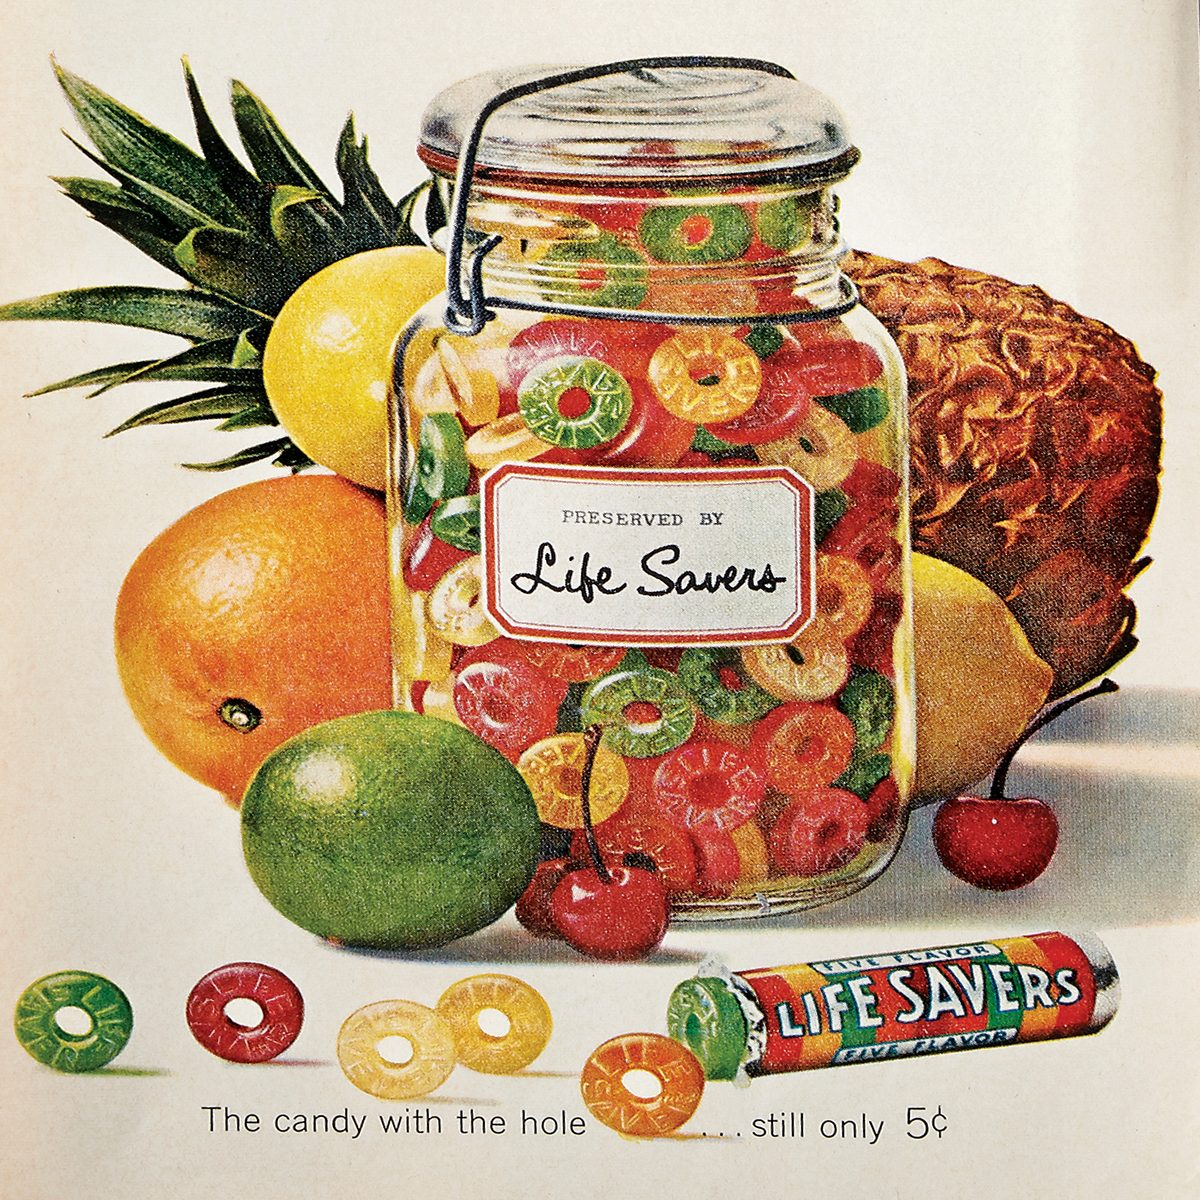 vintage ad for life savers candy